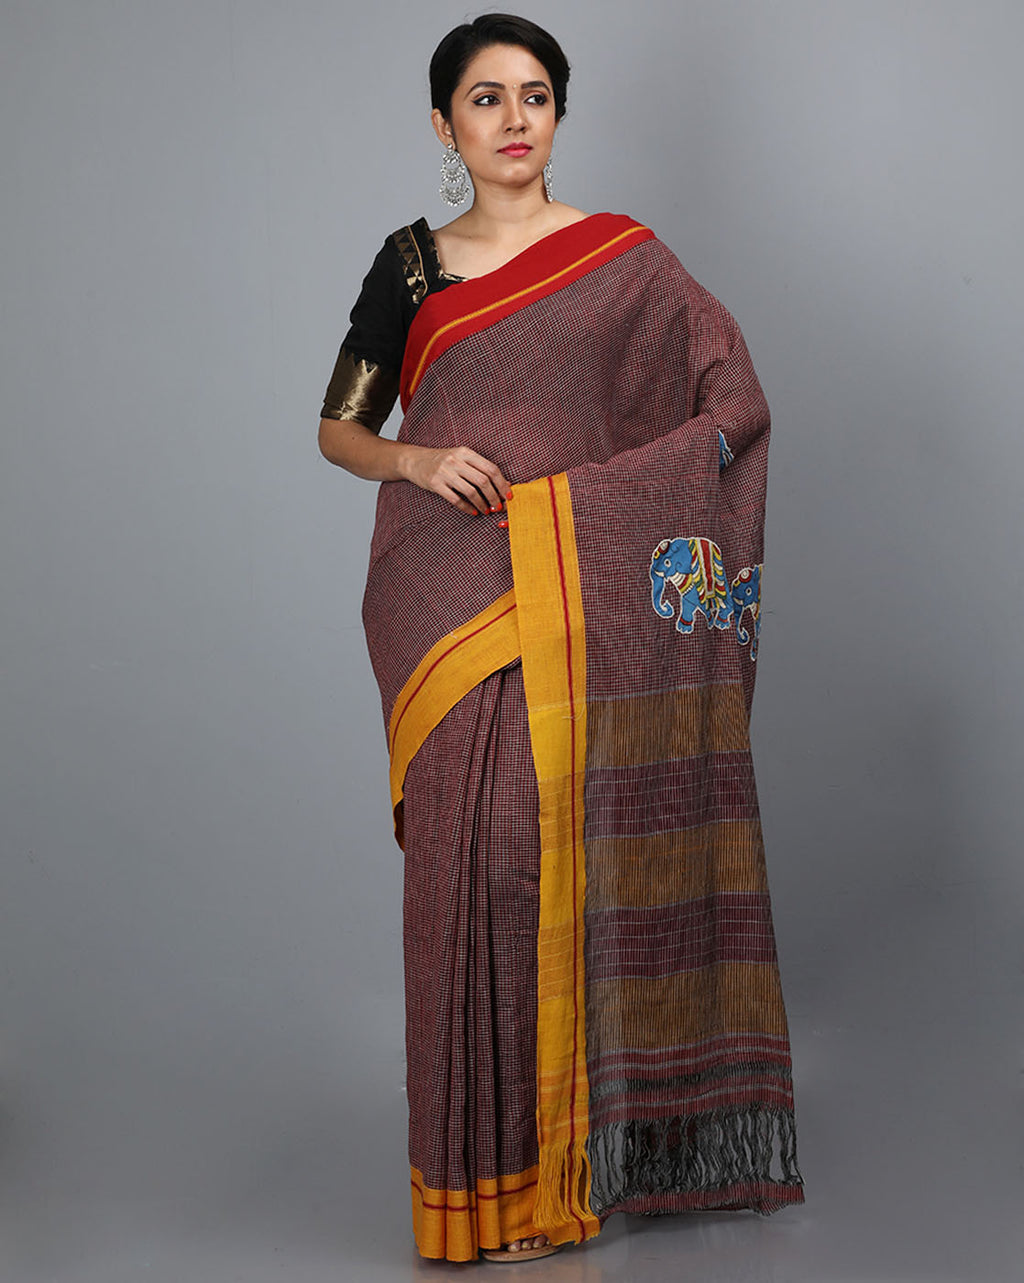 Patteda Anchu Saree with Elephant Pallu Patch - Maroon